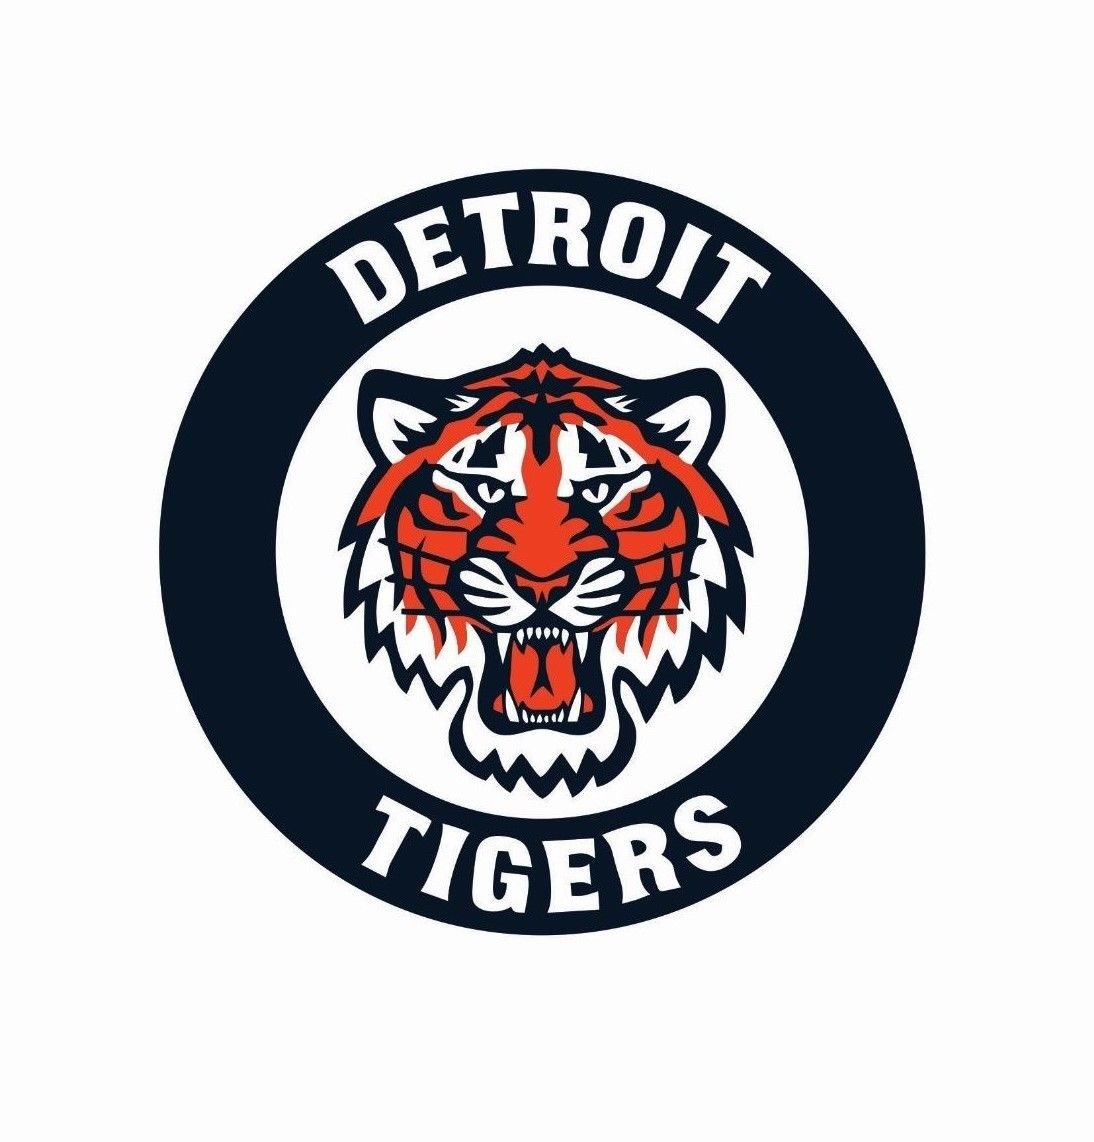 Detroit Tigers MLB Baseball Color Logo Sports Decal Sticker.